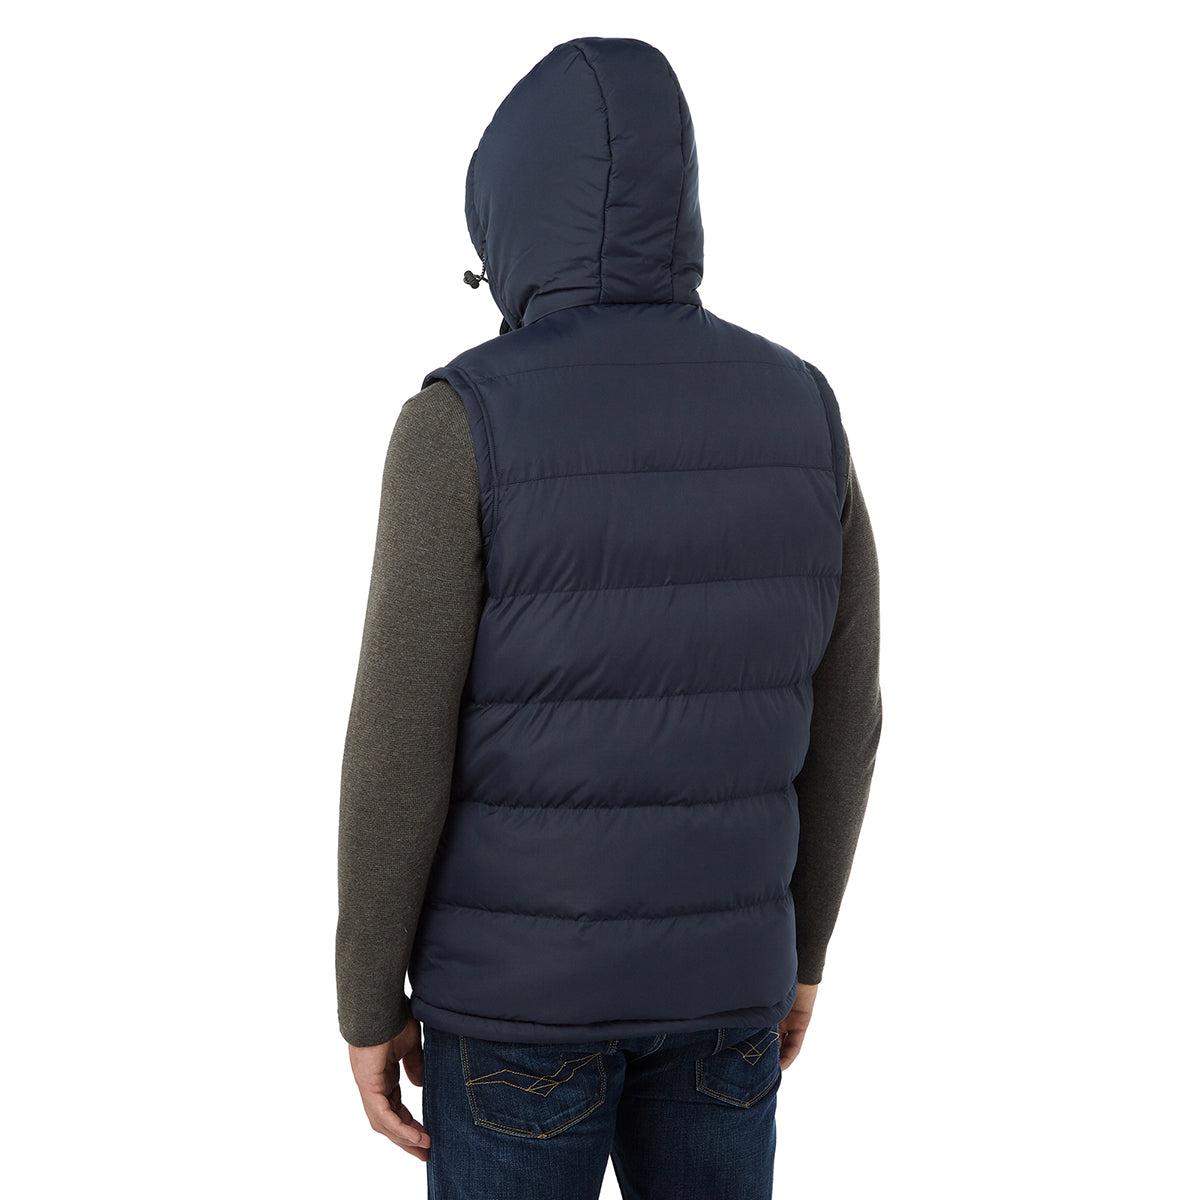 Worth Mens TCZ Thermal Gilet - Navy image 4